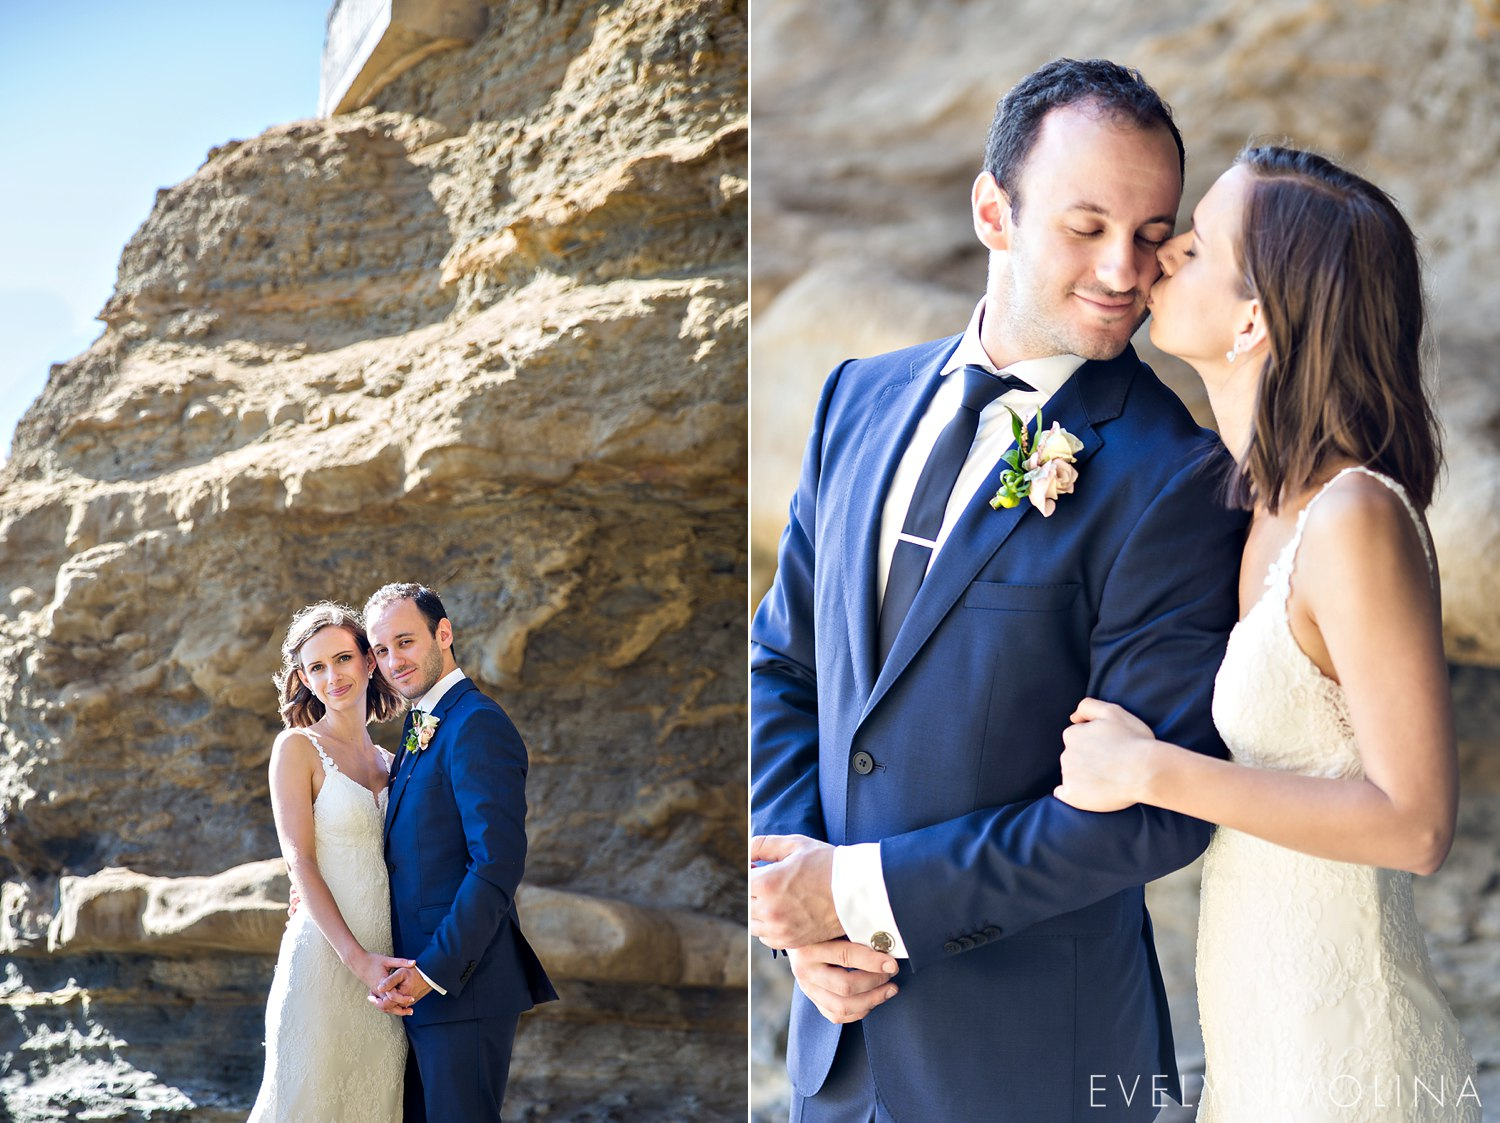 Sunset Cliffs Wedding Portraits - Becca and Alex - Evelyn Molina Photography_0009.jpg